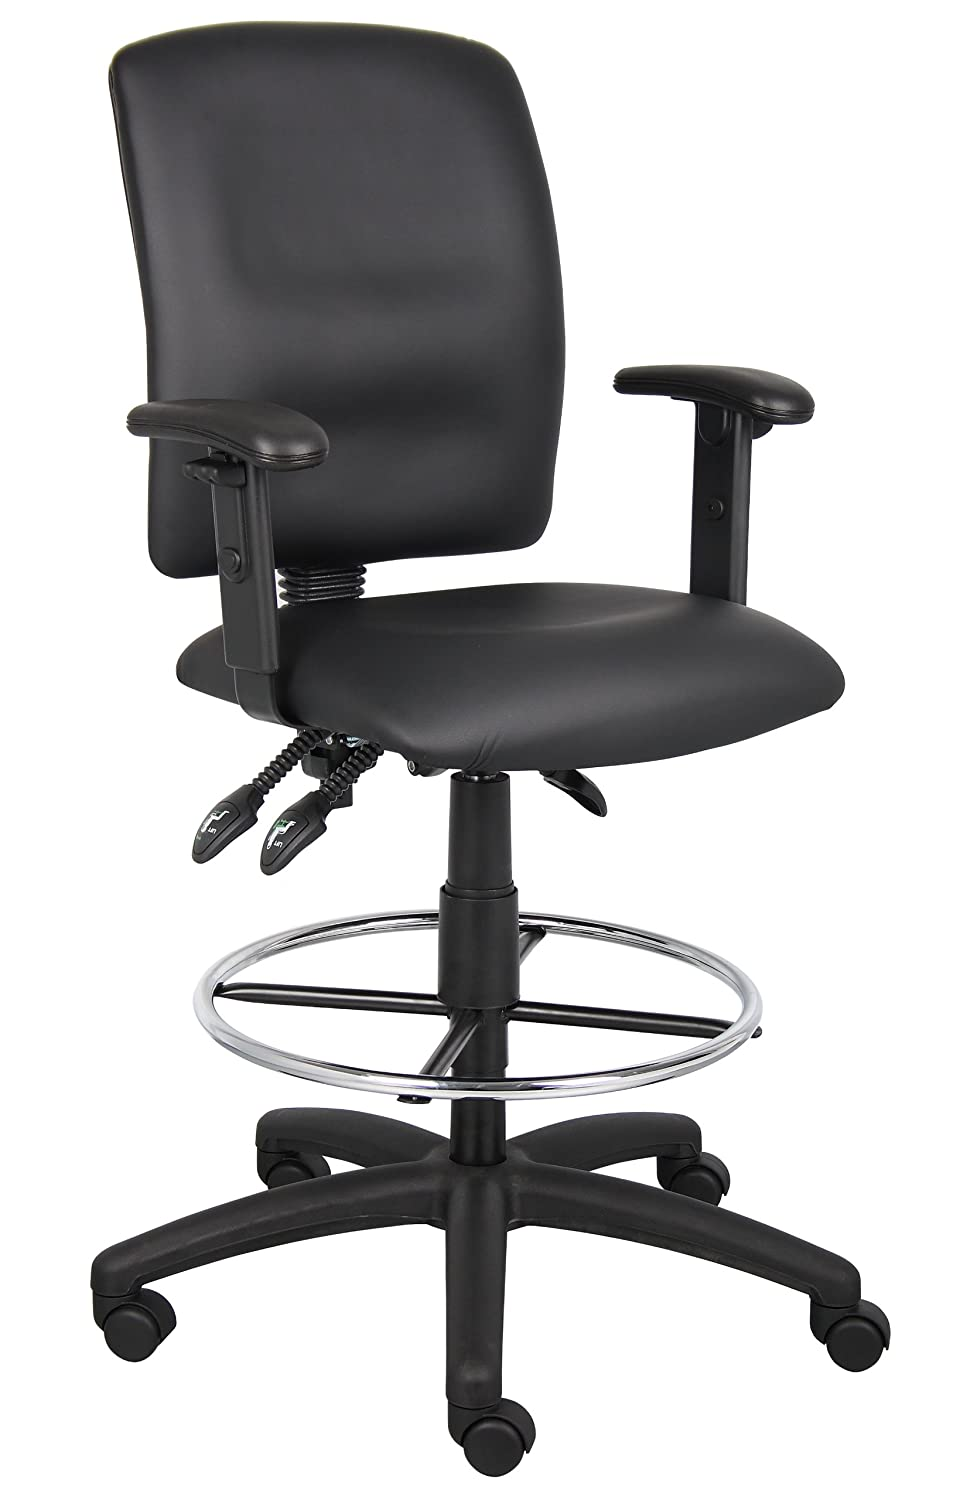 Superieur Amazon.com: Boss Office Products B1646 Multi Function LeatherPlus Drafting  Stool With Adjustable Arms In Black: Kitchen U0026 Dining